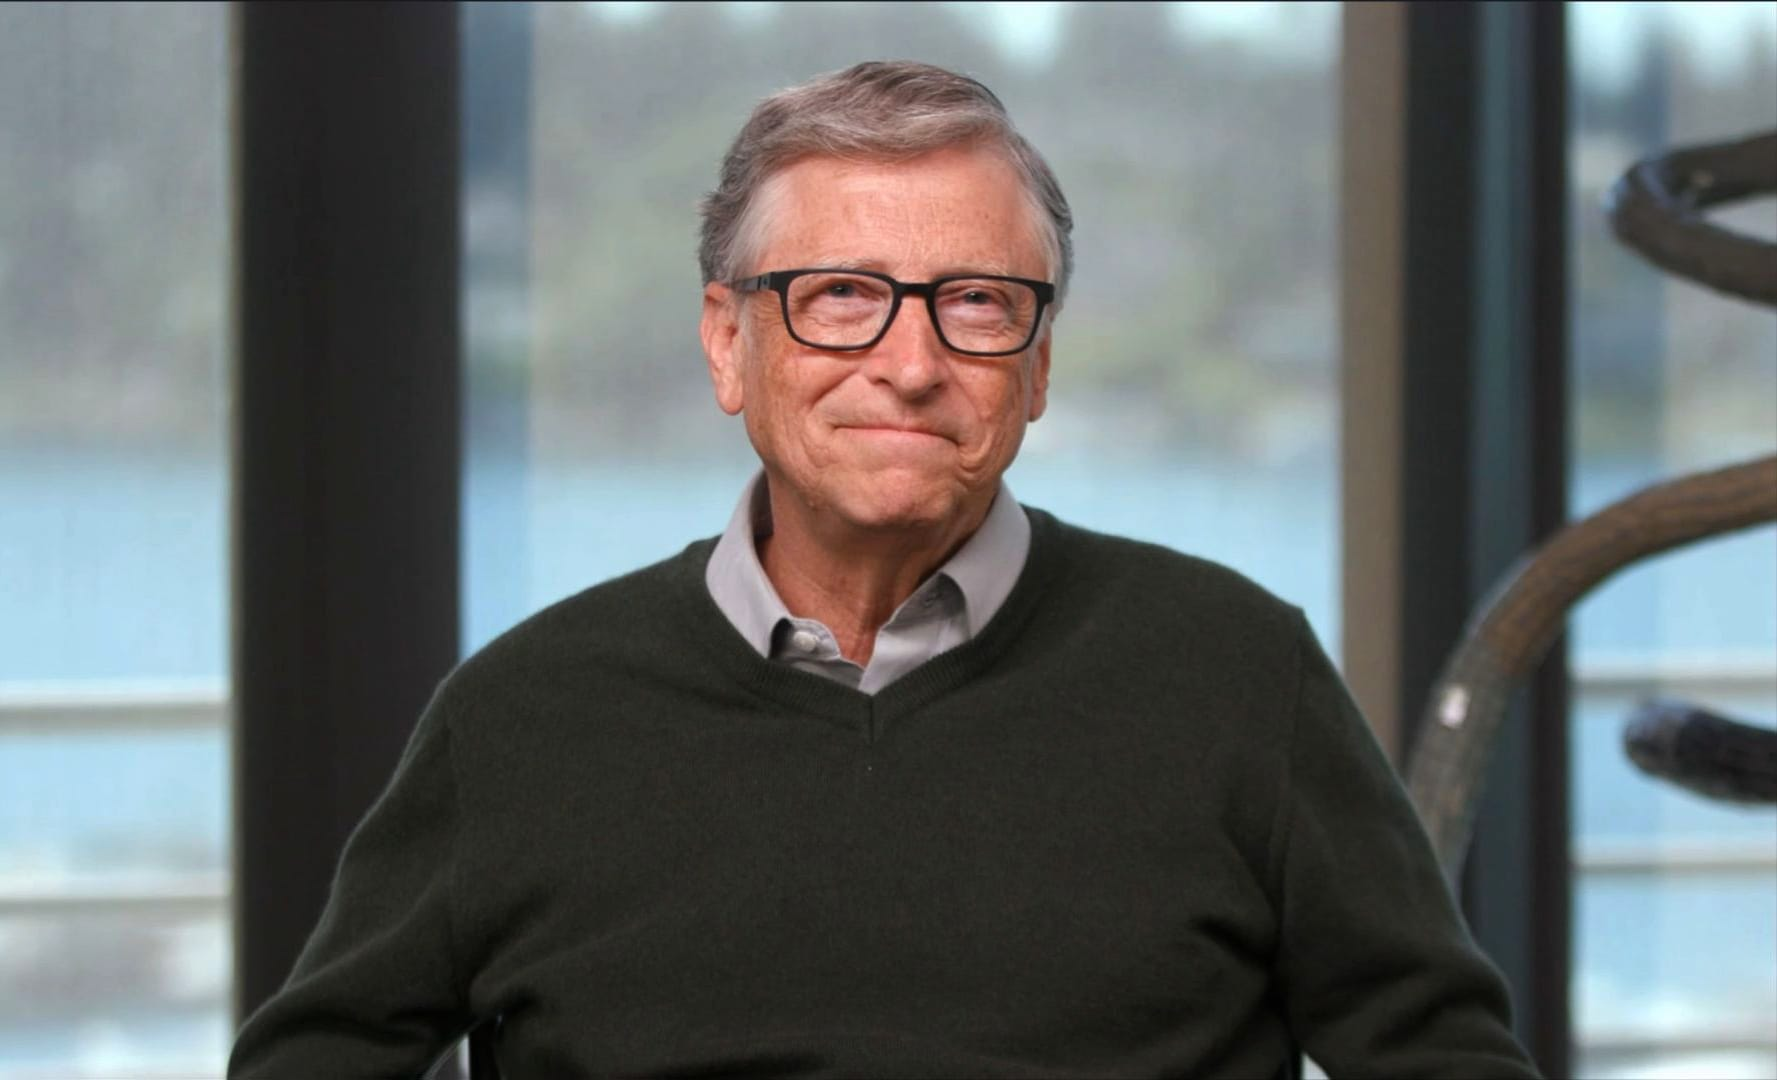 Bill Gates says more than 50% of business travel will disappear in post-coronavirus world